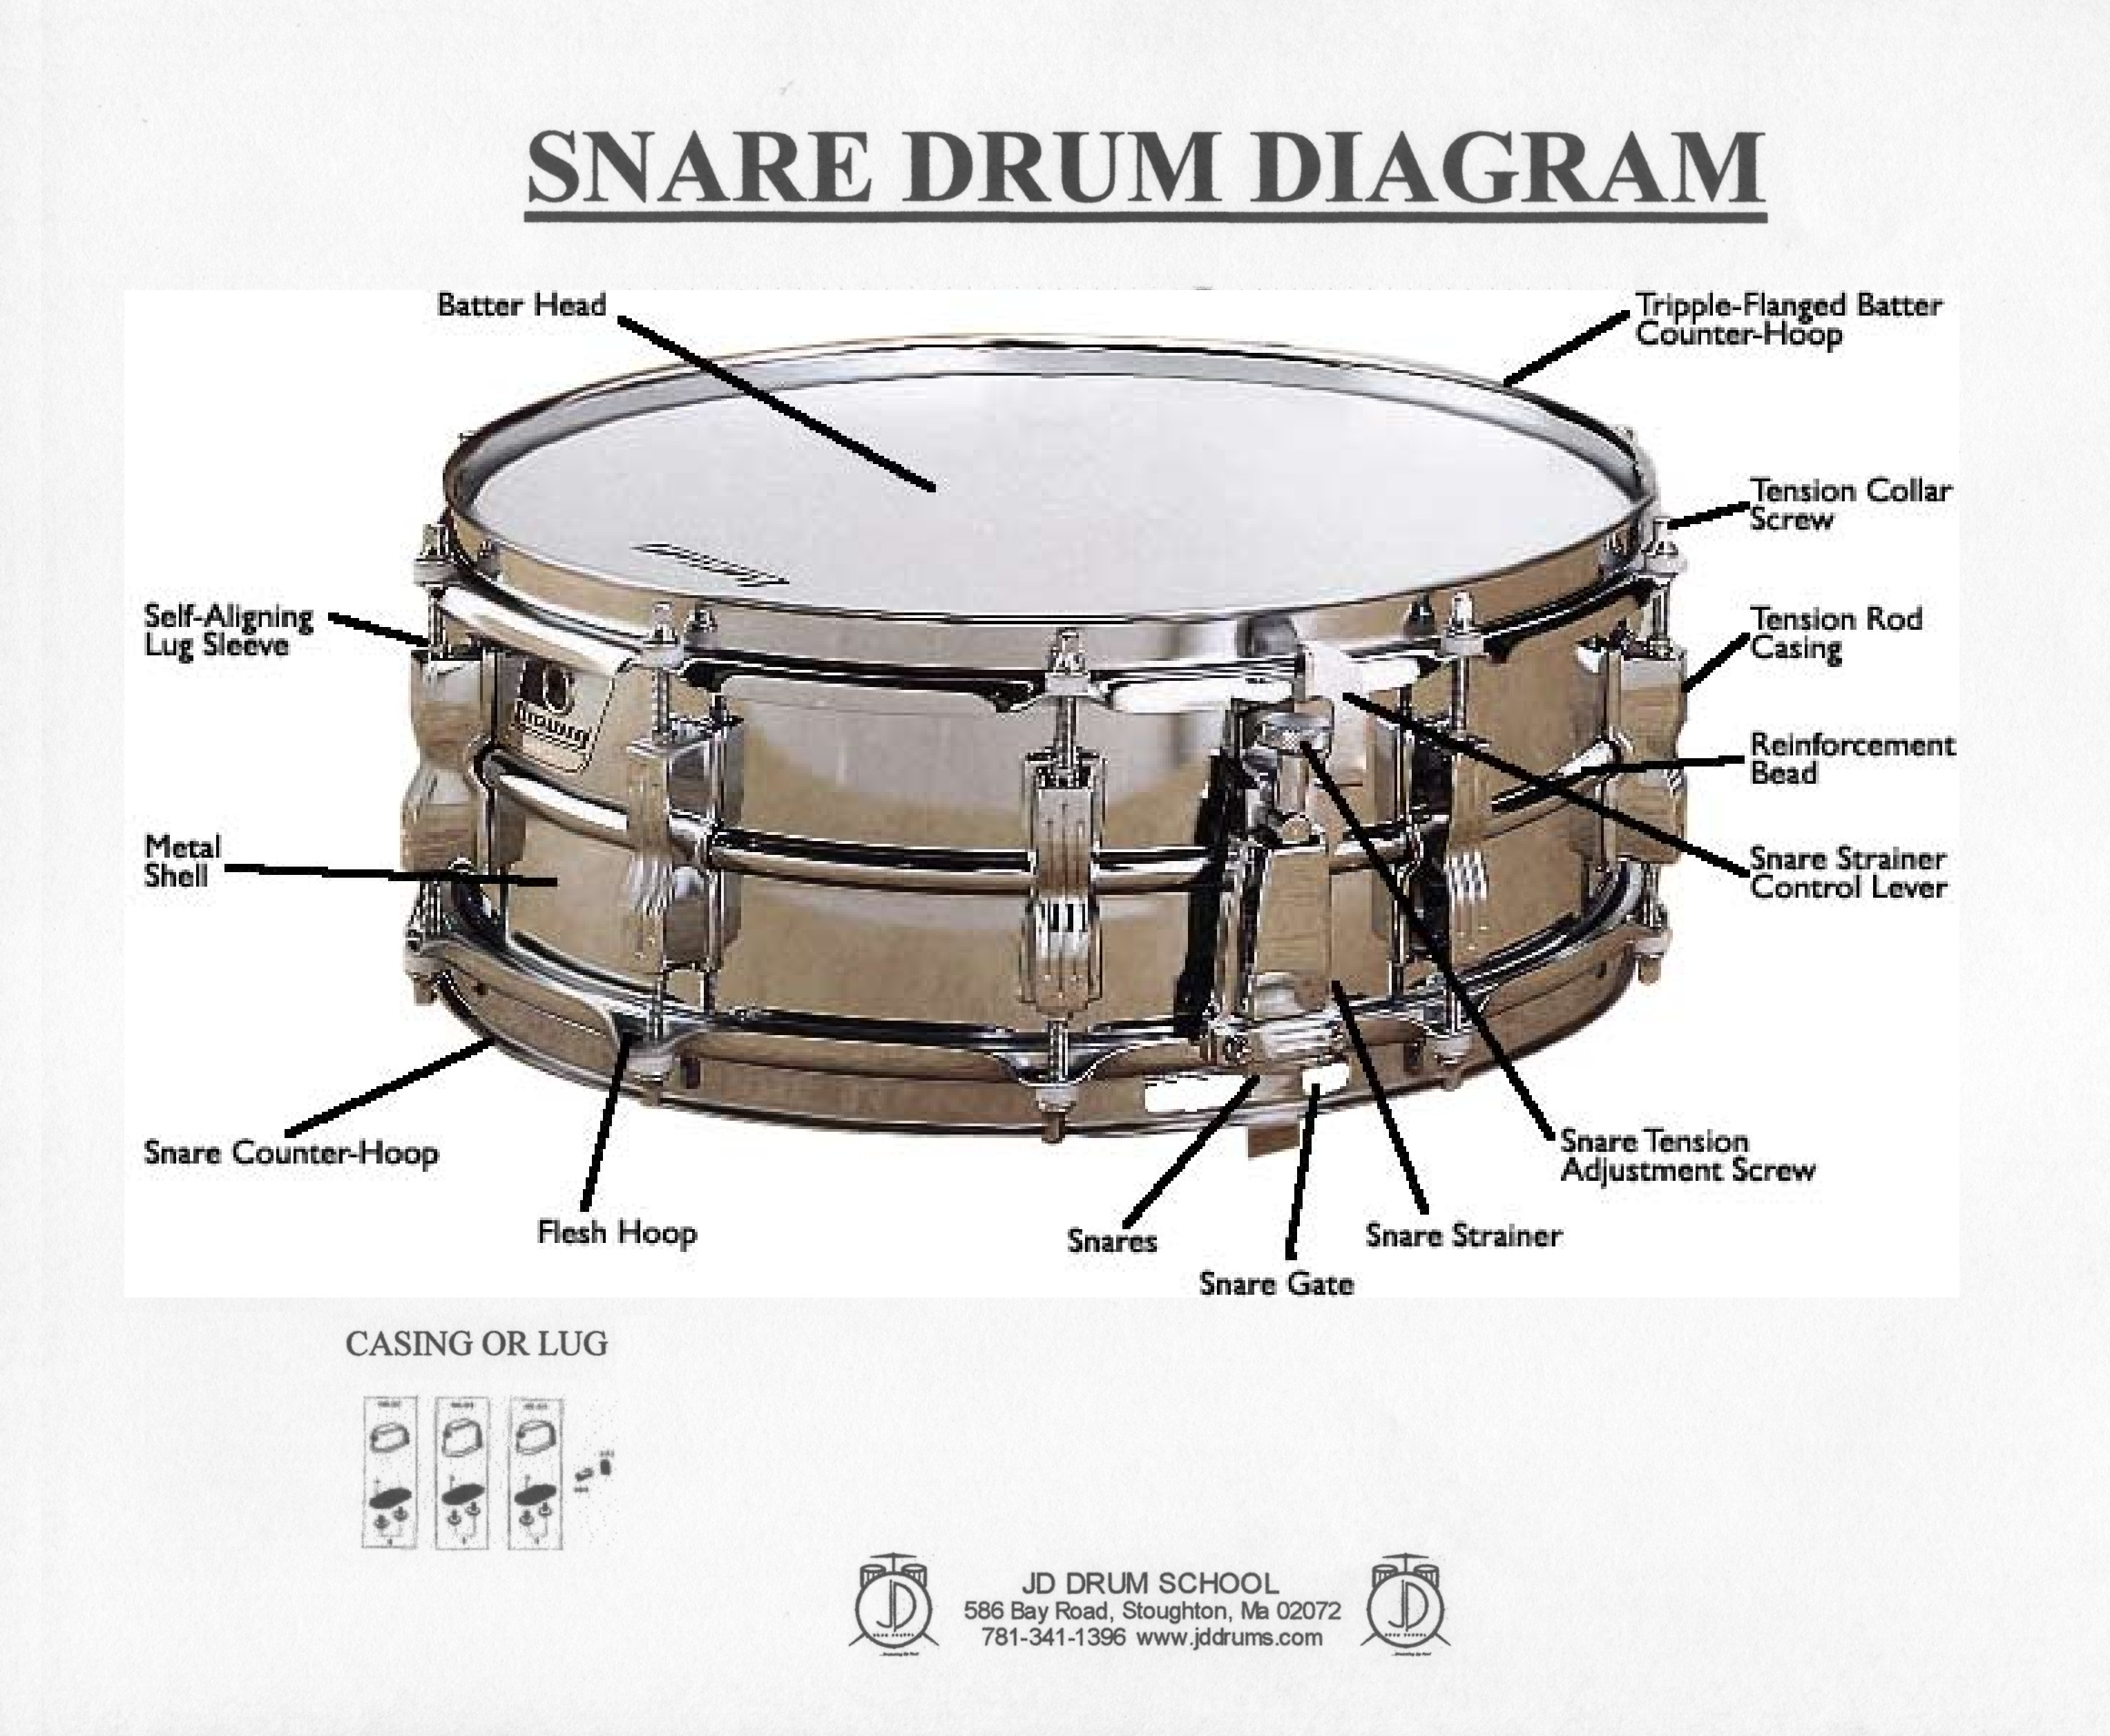 snare drum diagram library of wiring diagram u2022 rh jessascott co Snare Drum Drawing Drum Set Diagram